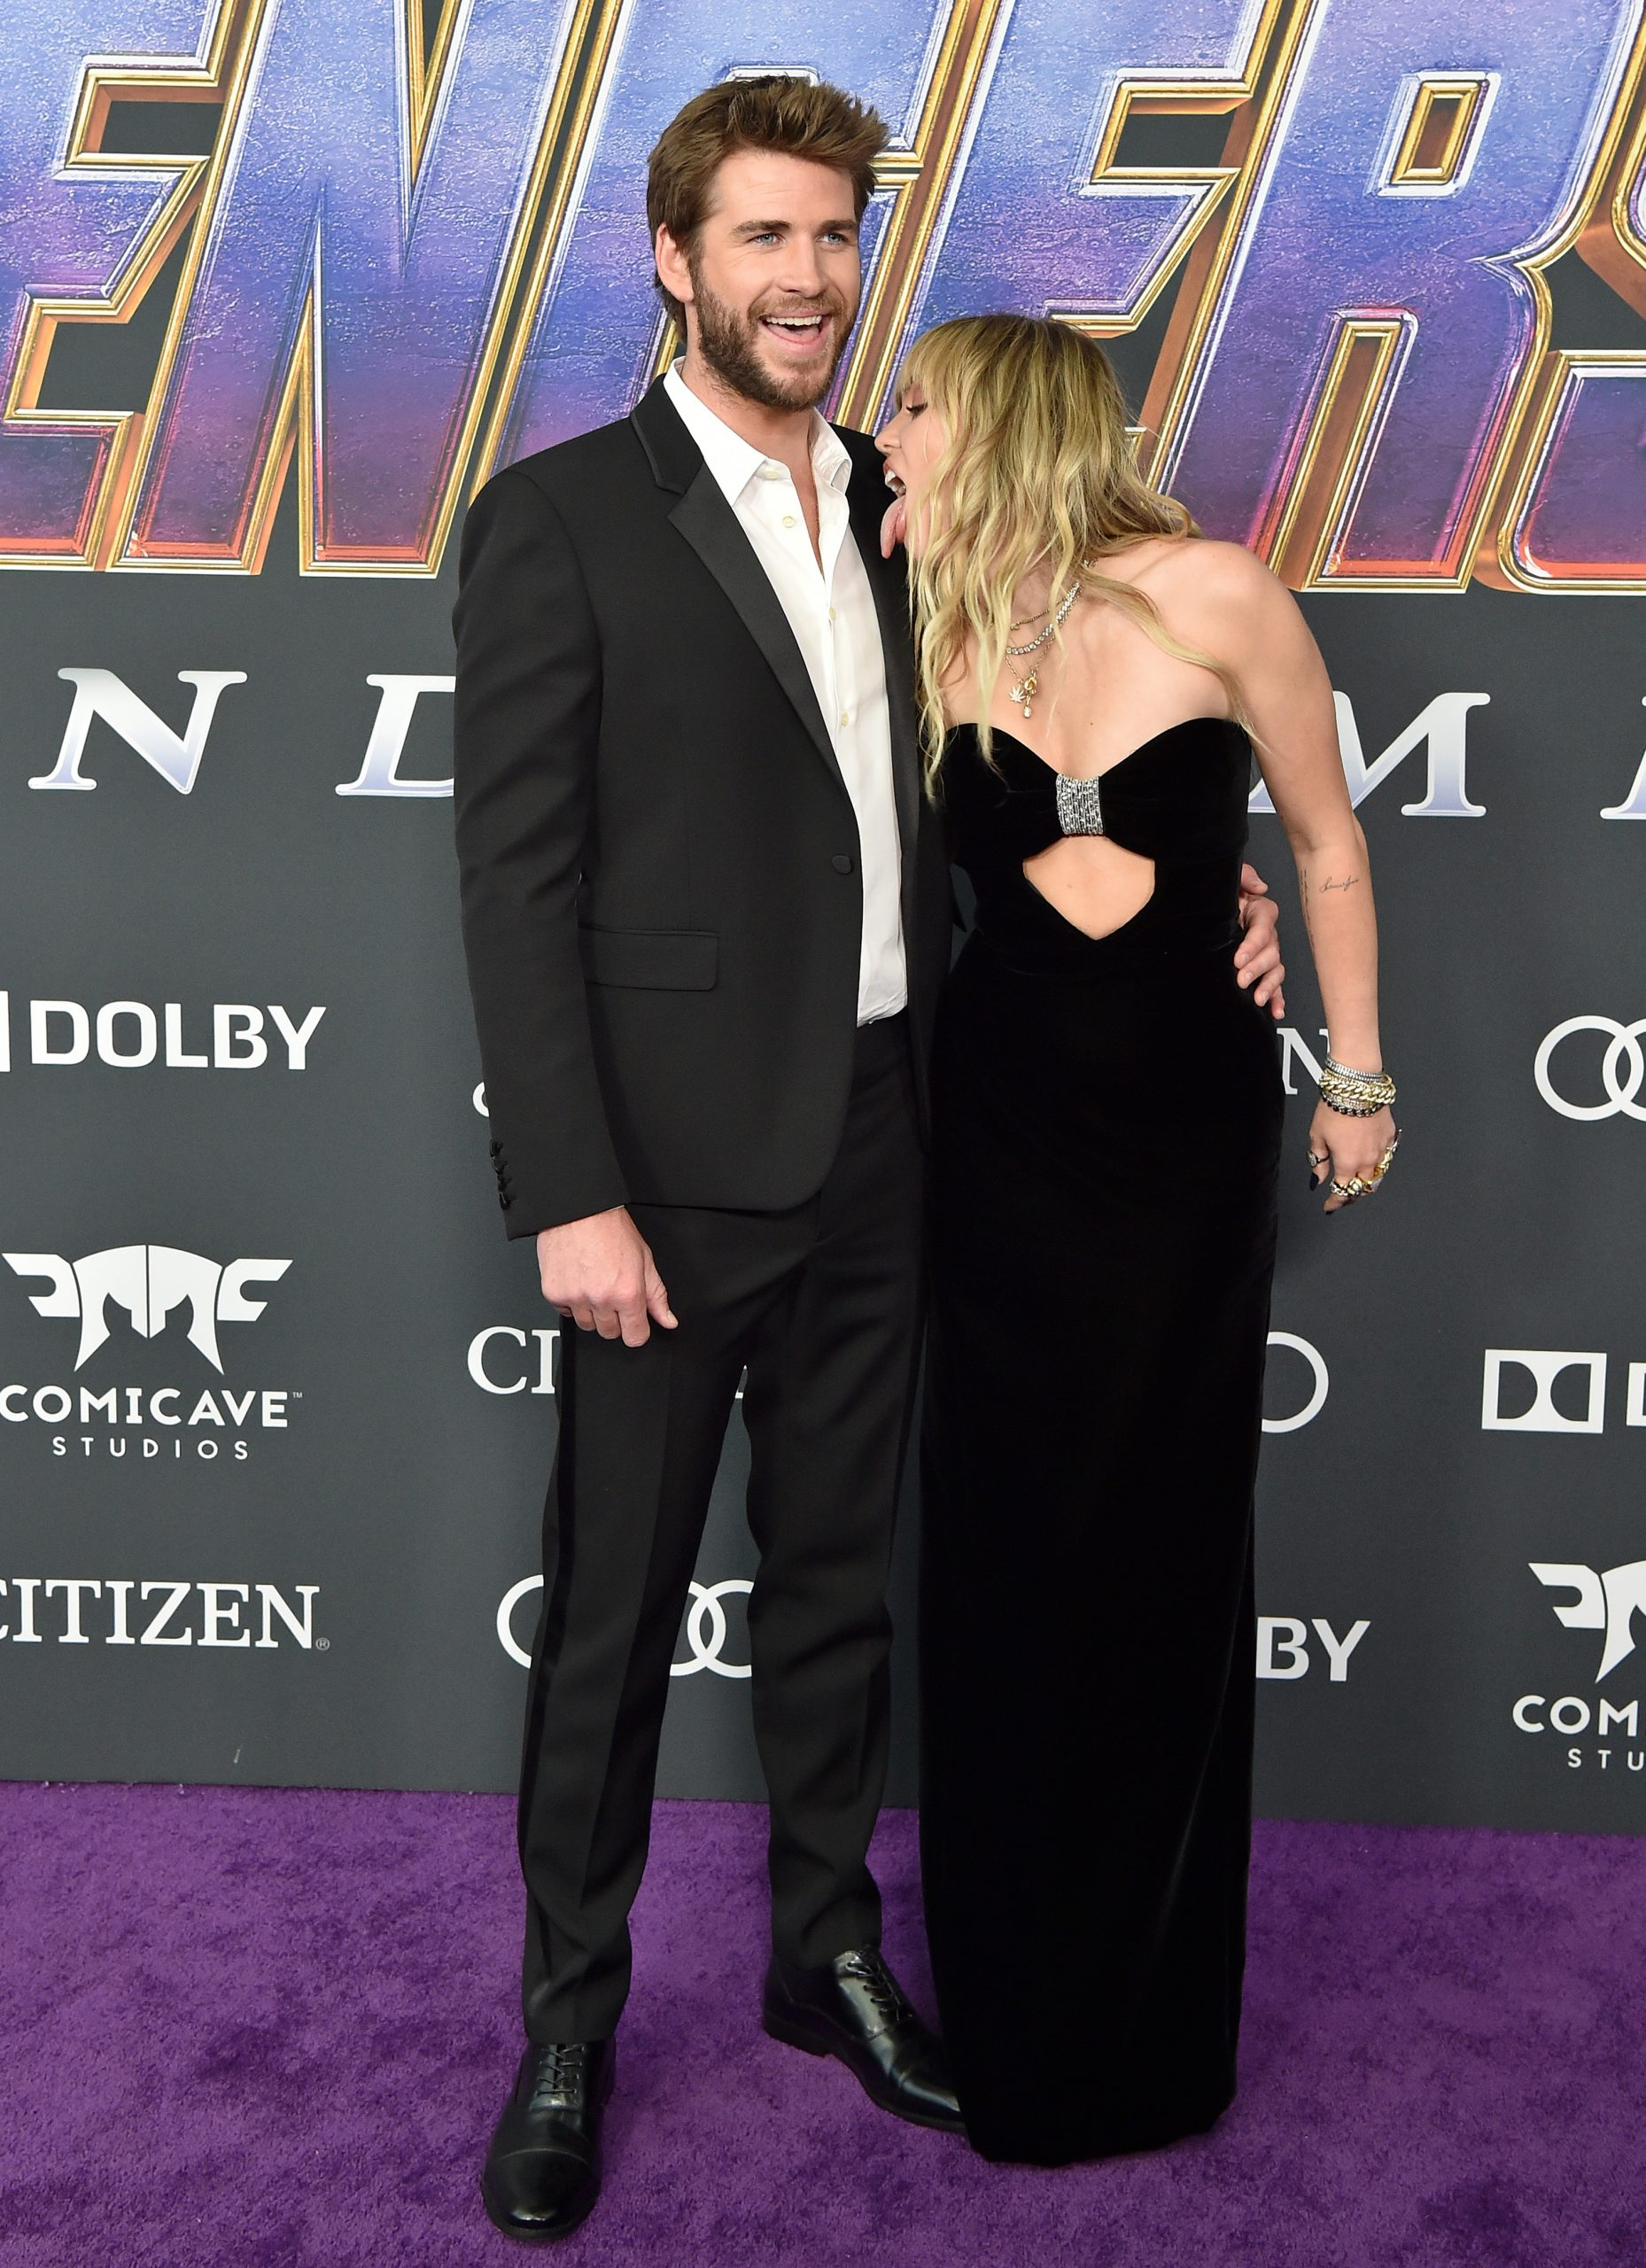 Miley Cyrus & Liam Hemsworth Set Couple Goals On The Red Carpet Of The World Premiere Of Avengers: Endgame